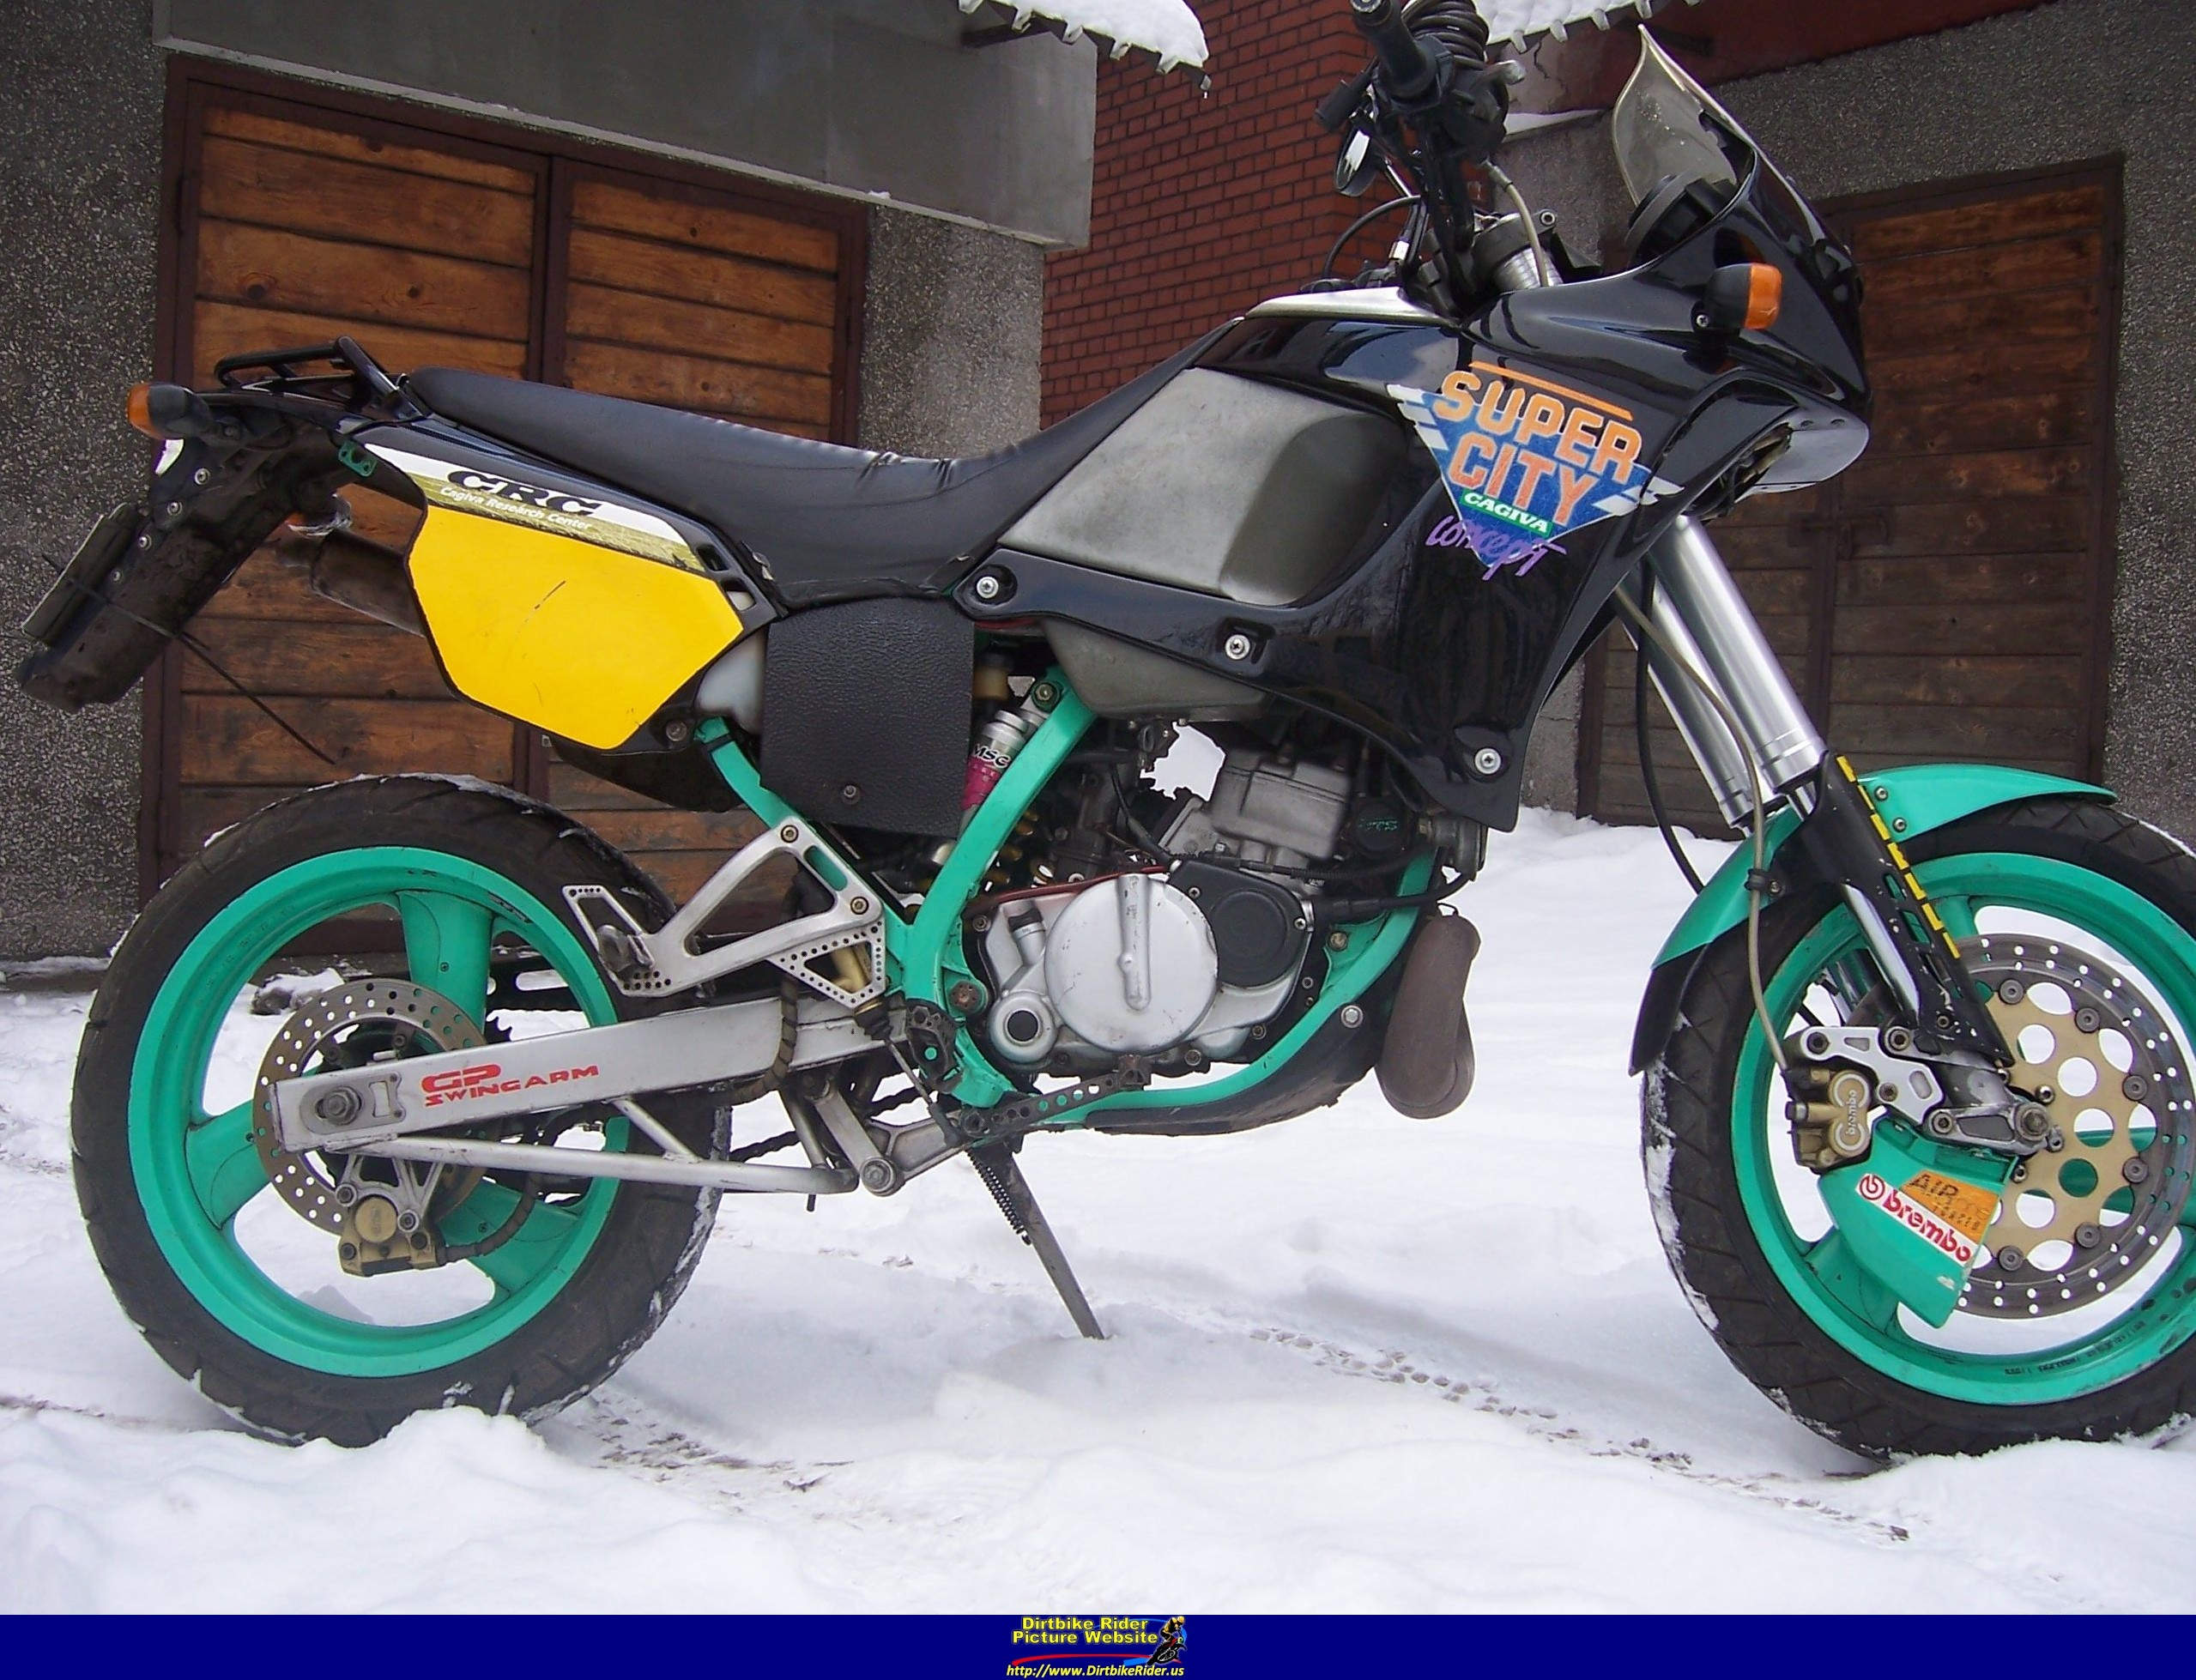 Cagiva Super City 125 2000 images #69298